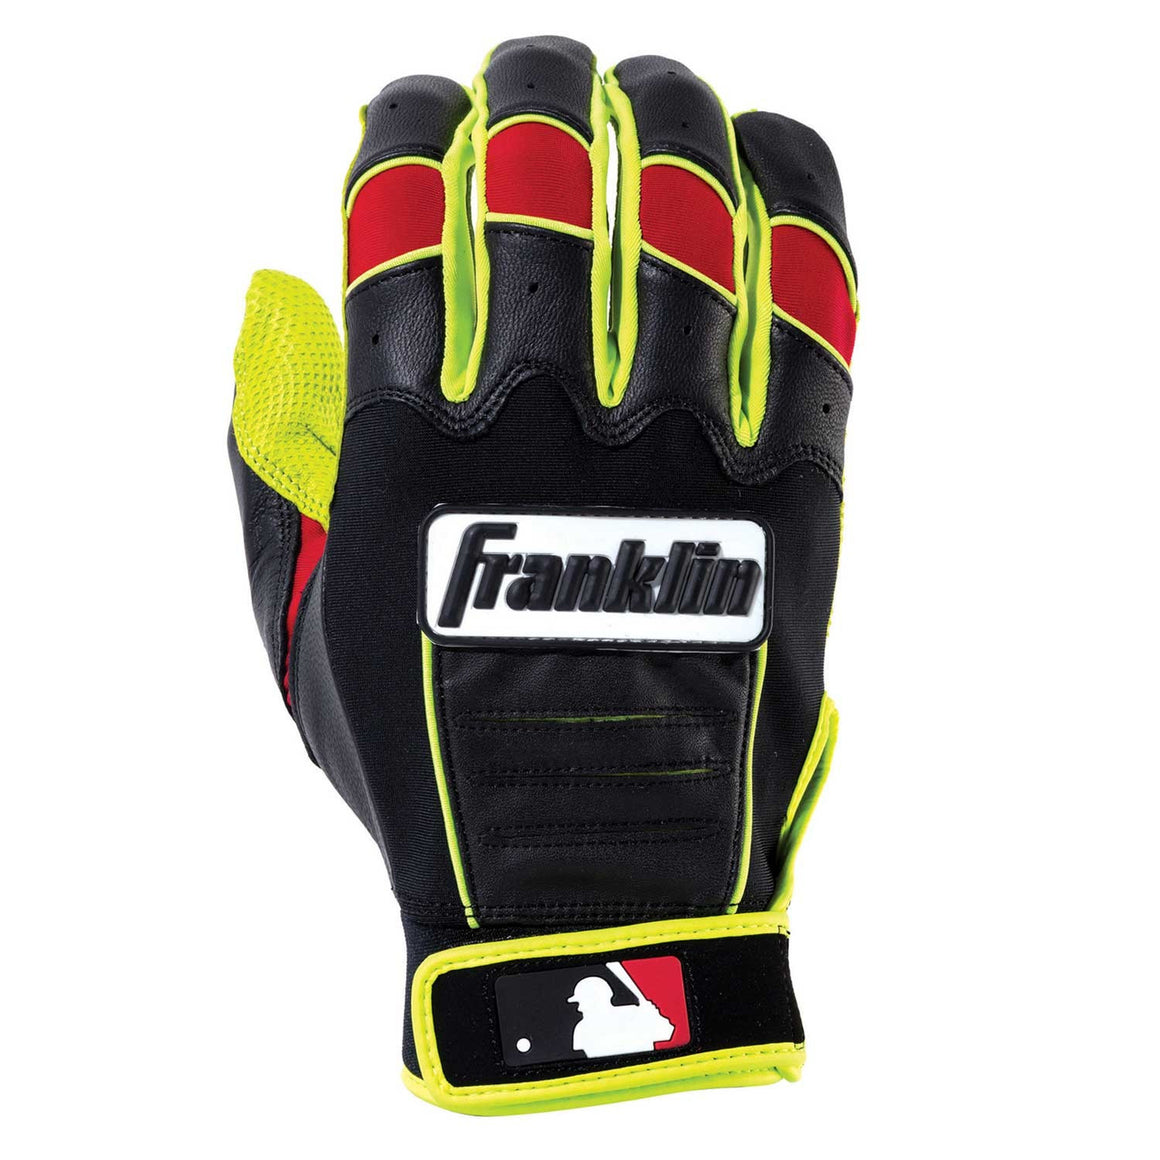 Franklin MLB CFX Pro Revolt Adult Batting Gloves, Optic Yellow/Black/Red, Size Small